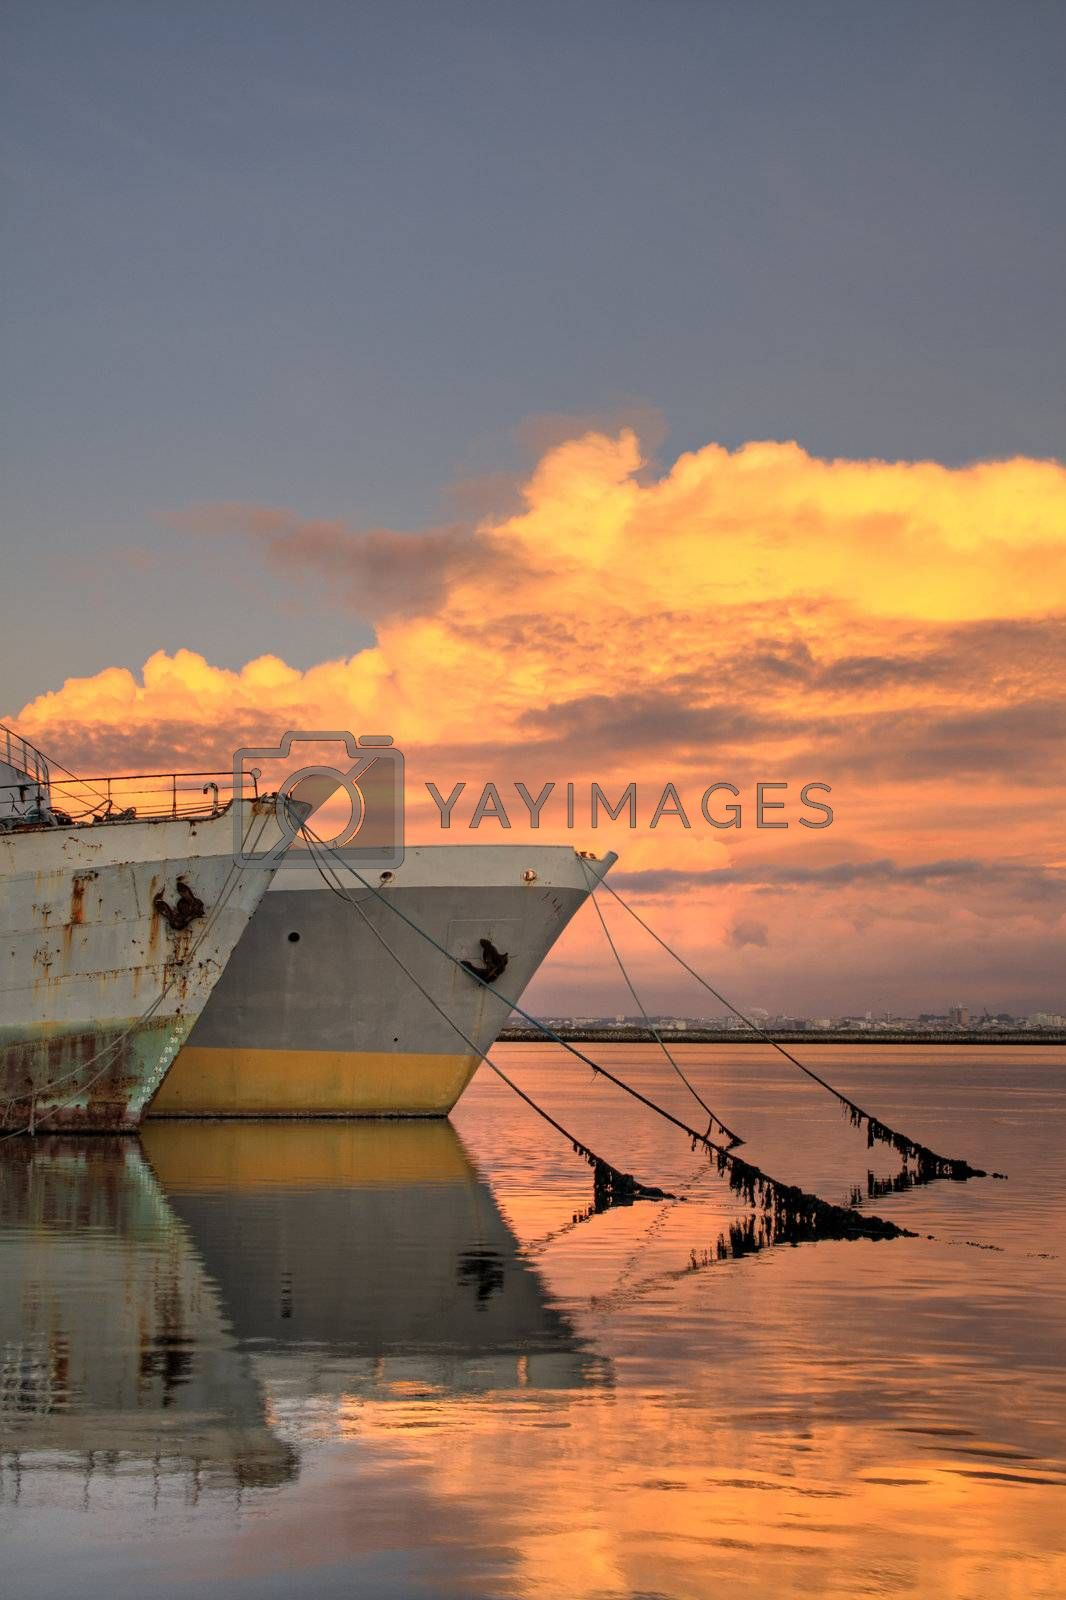 Old tankers in the sunset by PauloResende